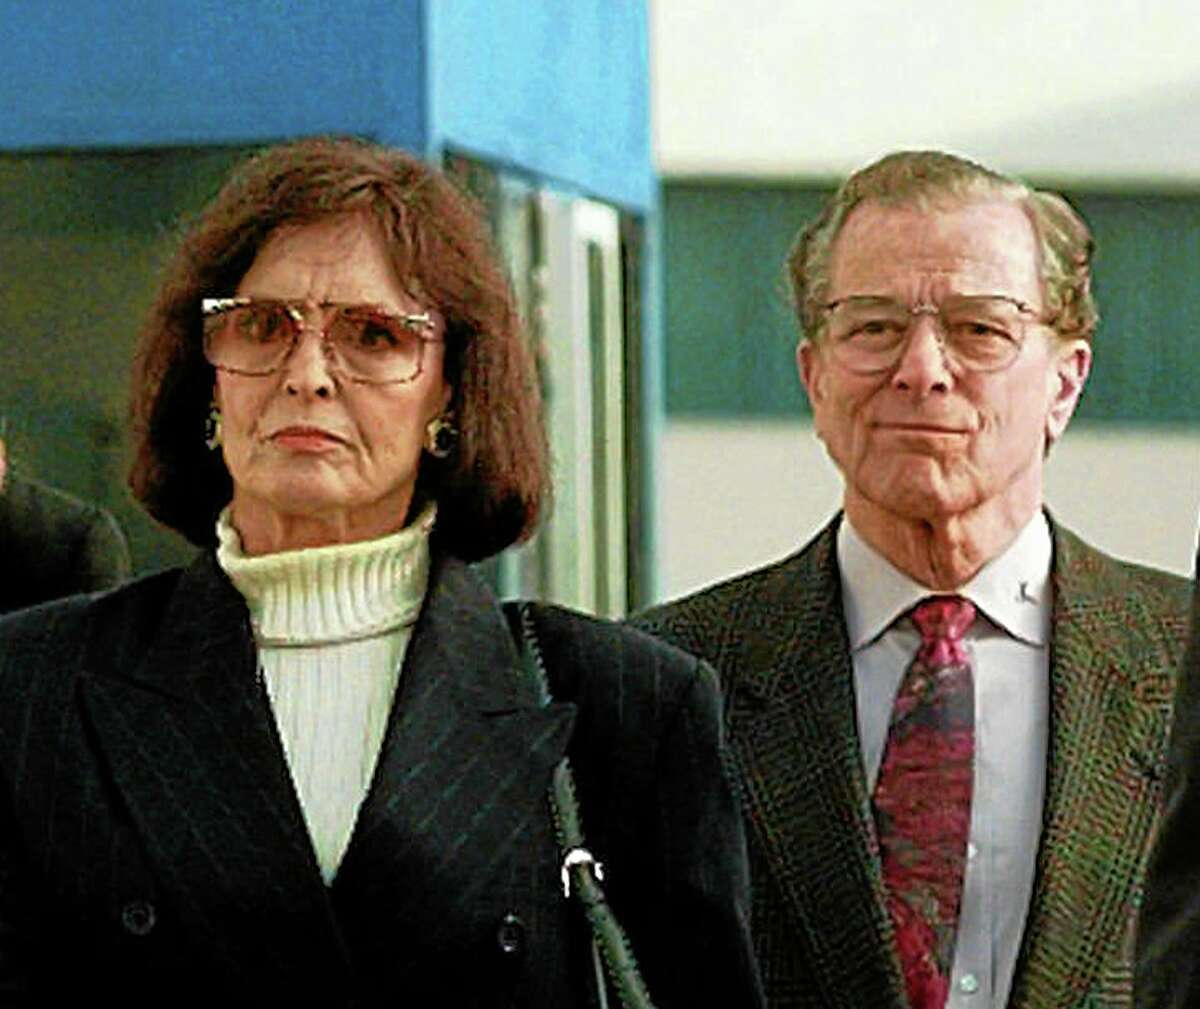 FILE - In a Jan. 21, 1997 file photo, Juditha and Louis H. Brown Jr., parents of Nicole Brown Simpson, arrive for the start of closing arguments in the O. J. Simpson wrongful death civil suit at Los Angeles County Superior Court in Santa Monica, Calif. Louis H. Brown Jr. died Thursday, July 3, 2014 at his Southern California home, said family attorney Natasha Roit. He was 90. (AP Photo/Kevork Djansezian, File)